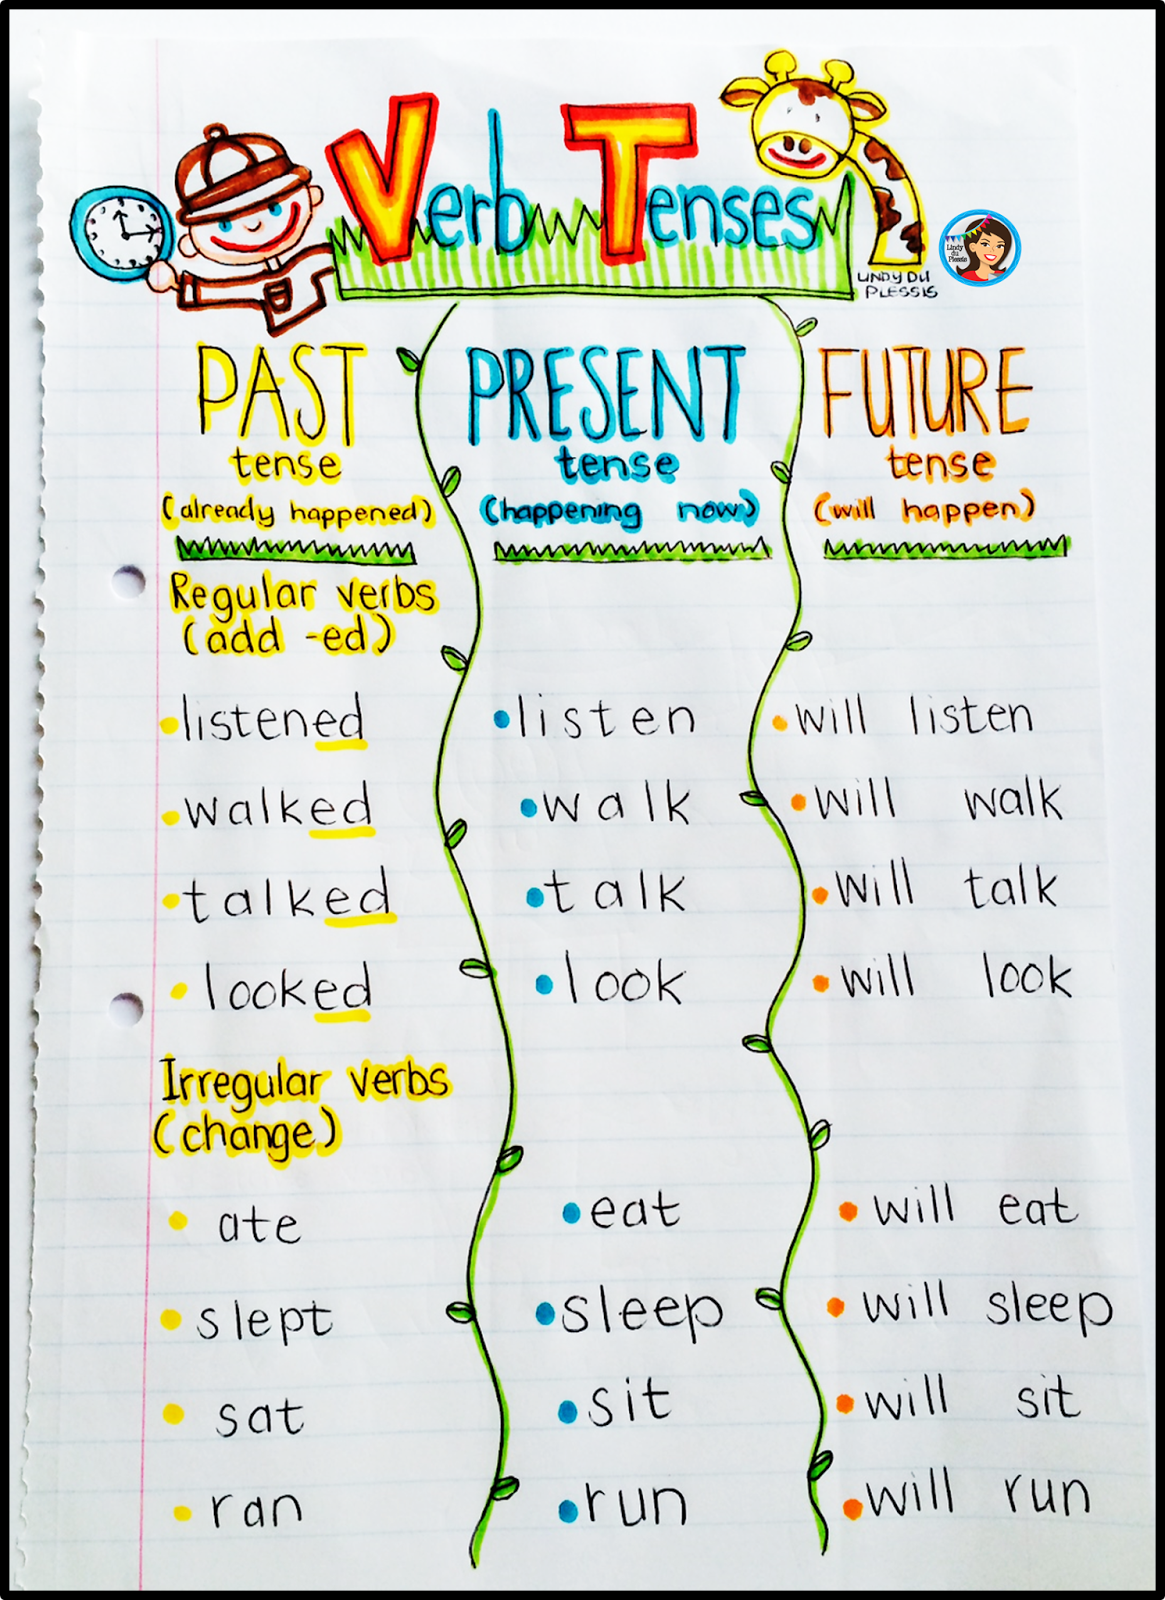 Past Tense Ppt For Kids